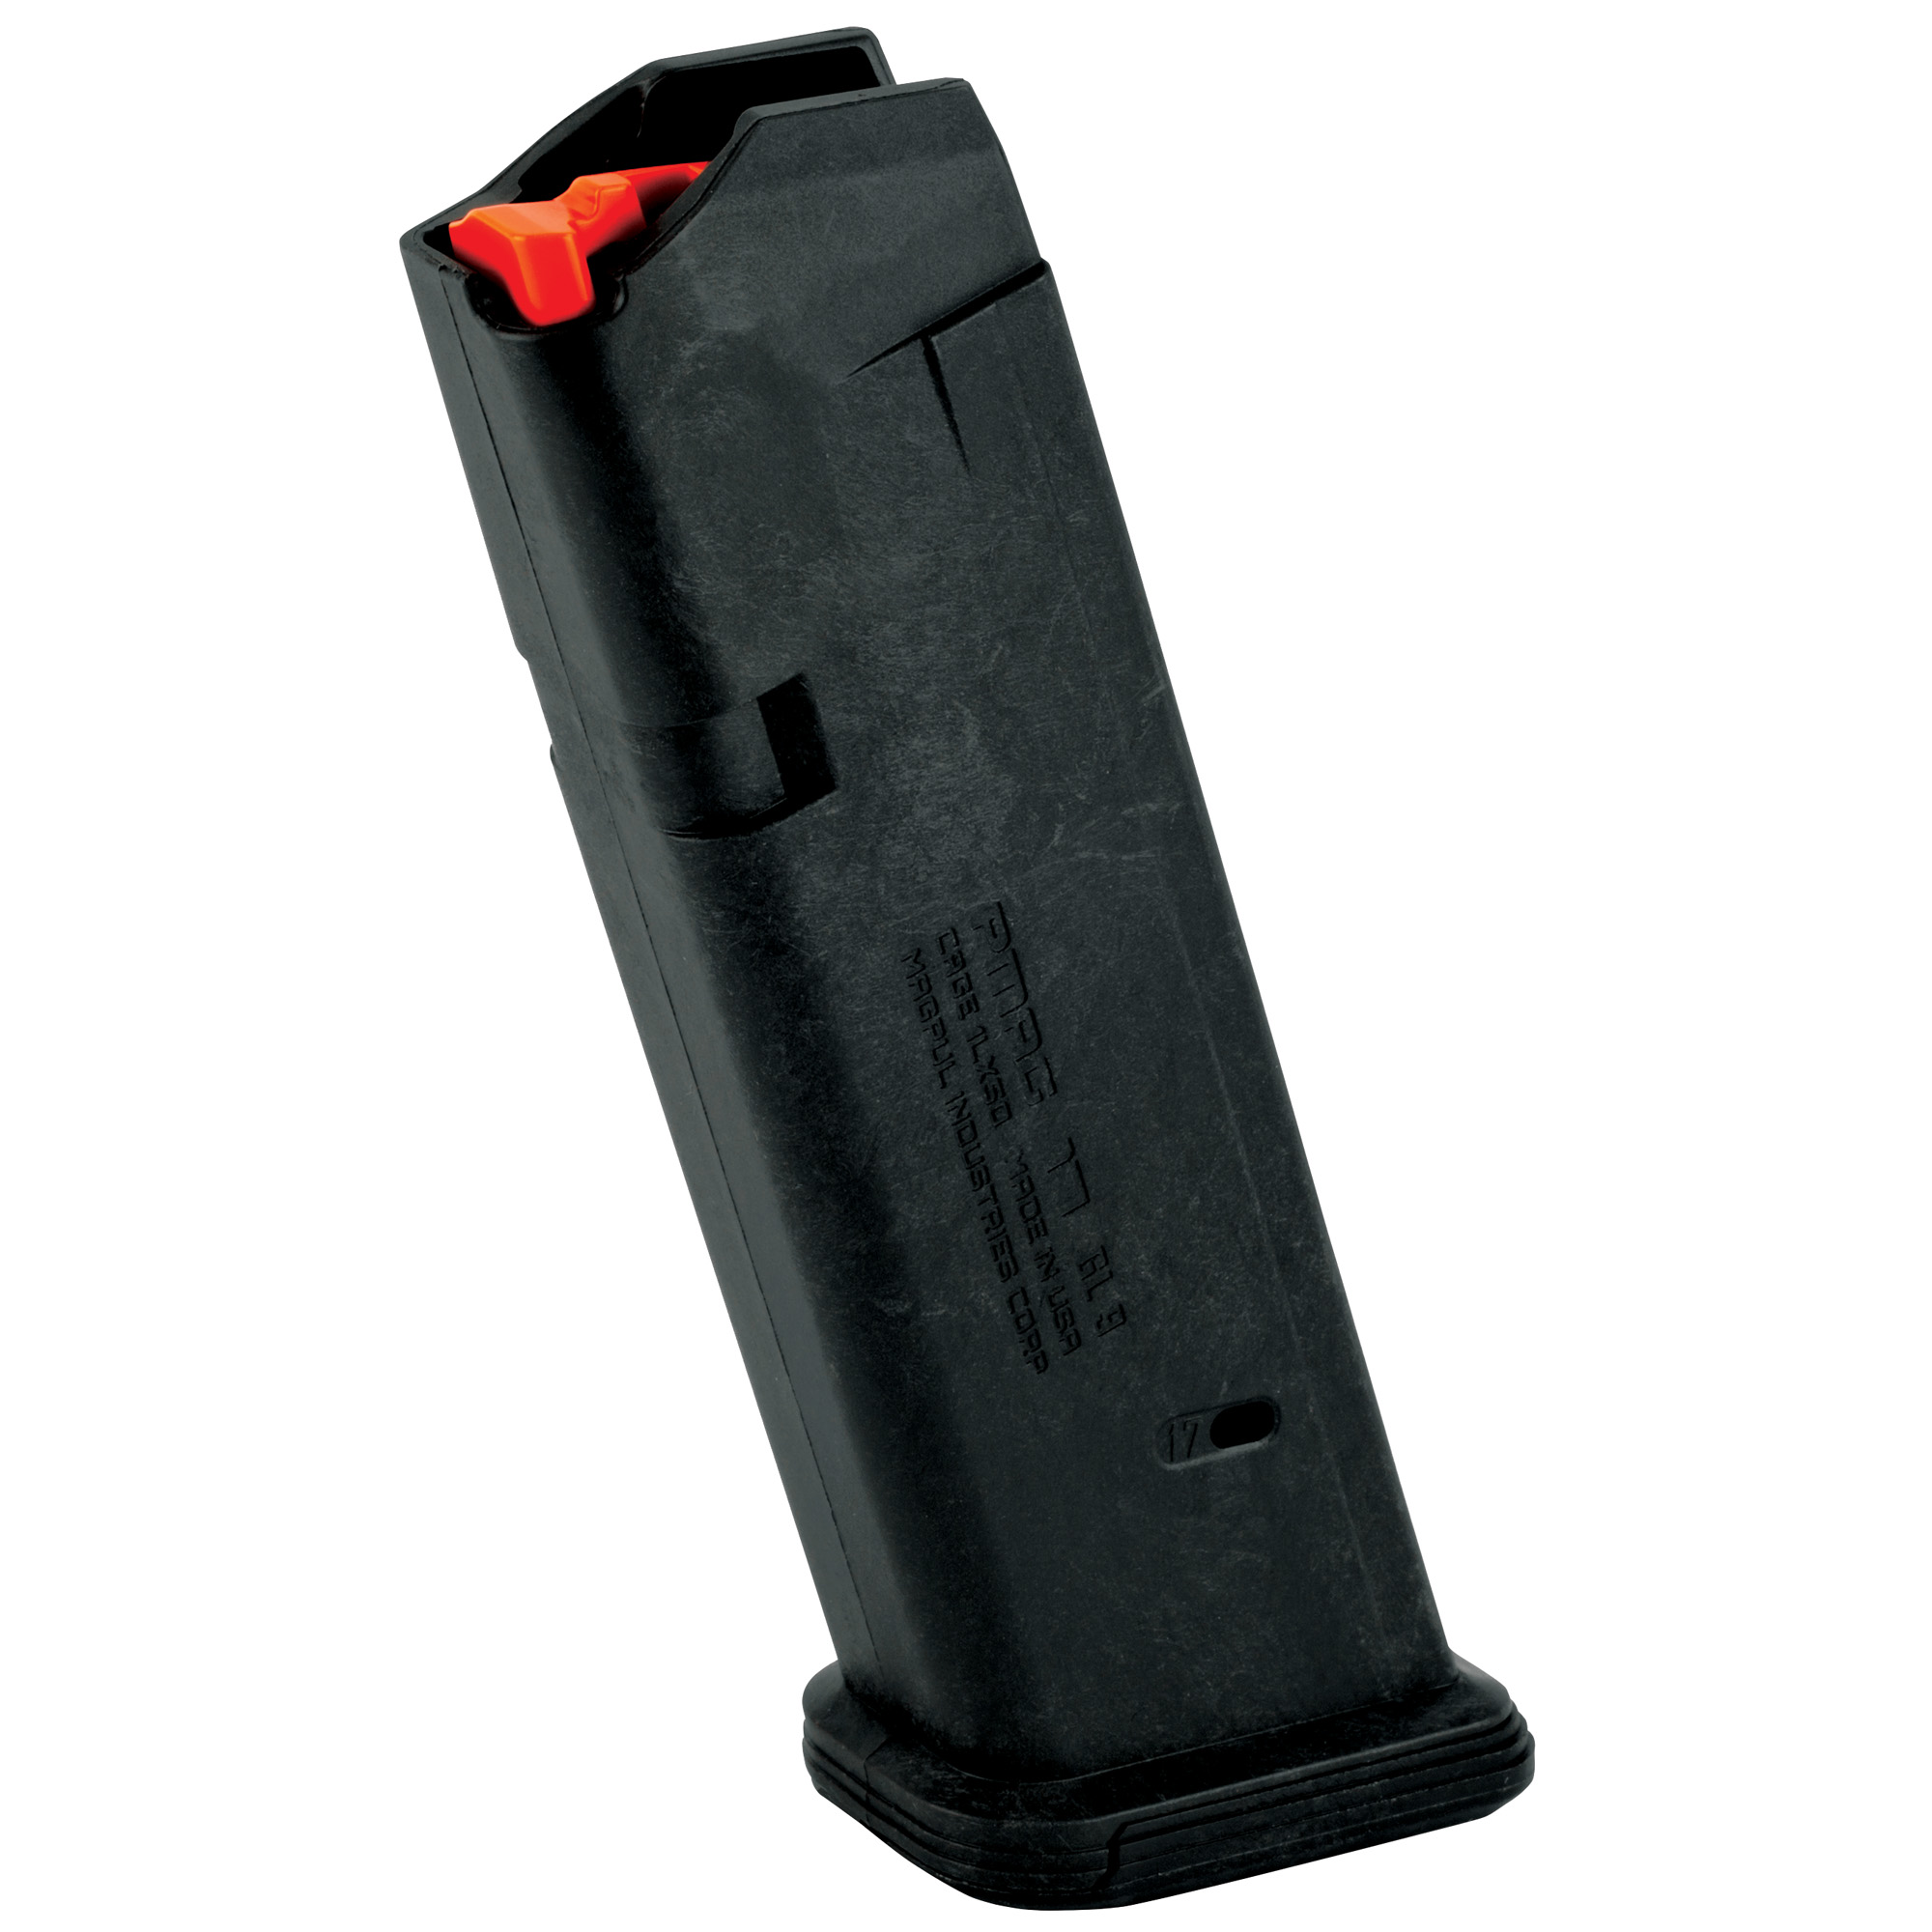 "The PMAG 17 GL9 is a 17-round Glock 9mm handgun magazine featuring a new proprietary all-polymer construction for flawless reliability and durability over thousands of rounds. High visibility controlled-tilt follower"" stainless steel spring"" easily removable floorplate for cleaning"" paint pen dot matrix for mag marking"" ridged floorplate edges for better grip"" and 17rd indicator windows. Drops free loaded or unloaded. All with the same boring reliability you expect from an OEM magazine."